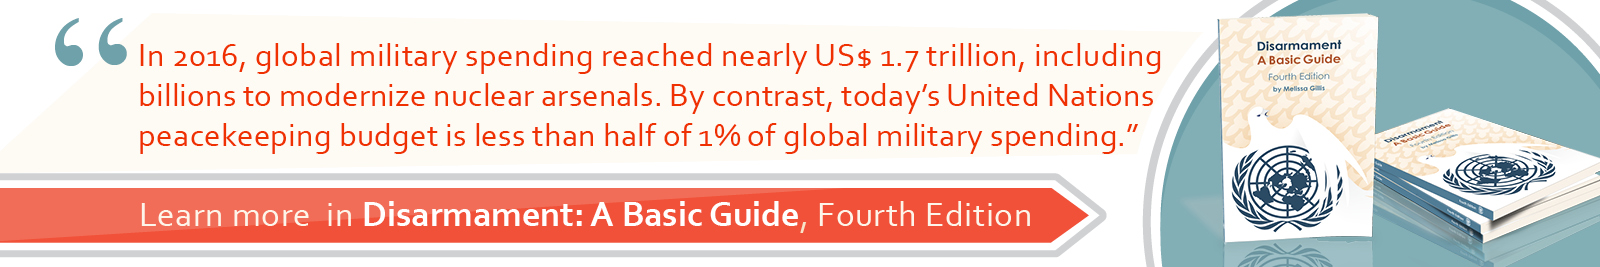 4.	In 2016, global military spending reached nearly US$ 1.7 trillion, including billions to modernize nuclear arsenals. By contrast, today's United Nations peacekeeping budget is less than half of 1% of global military spending.